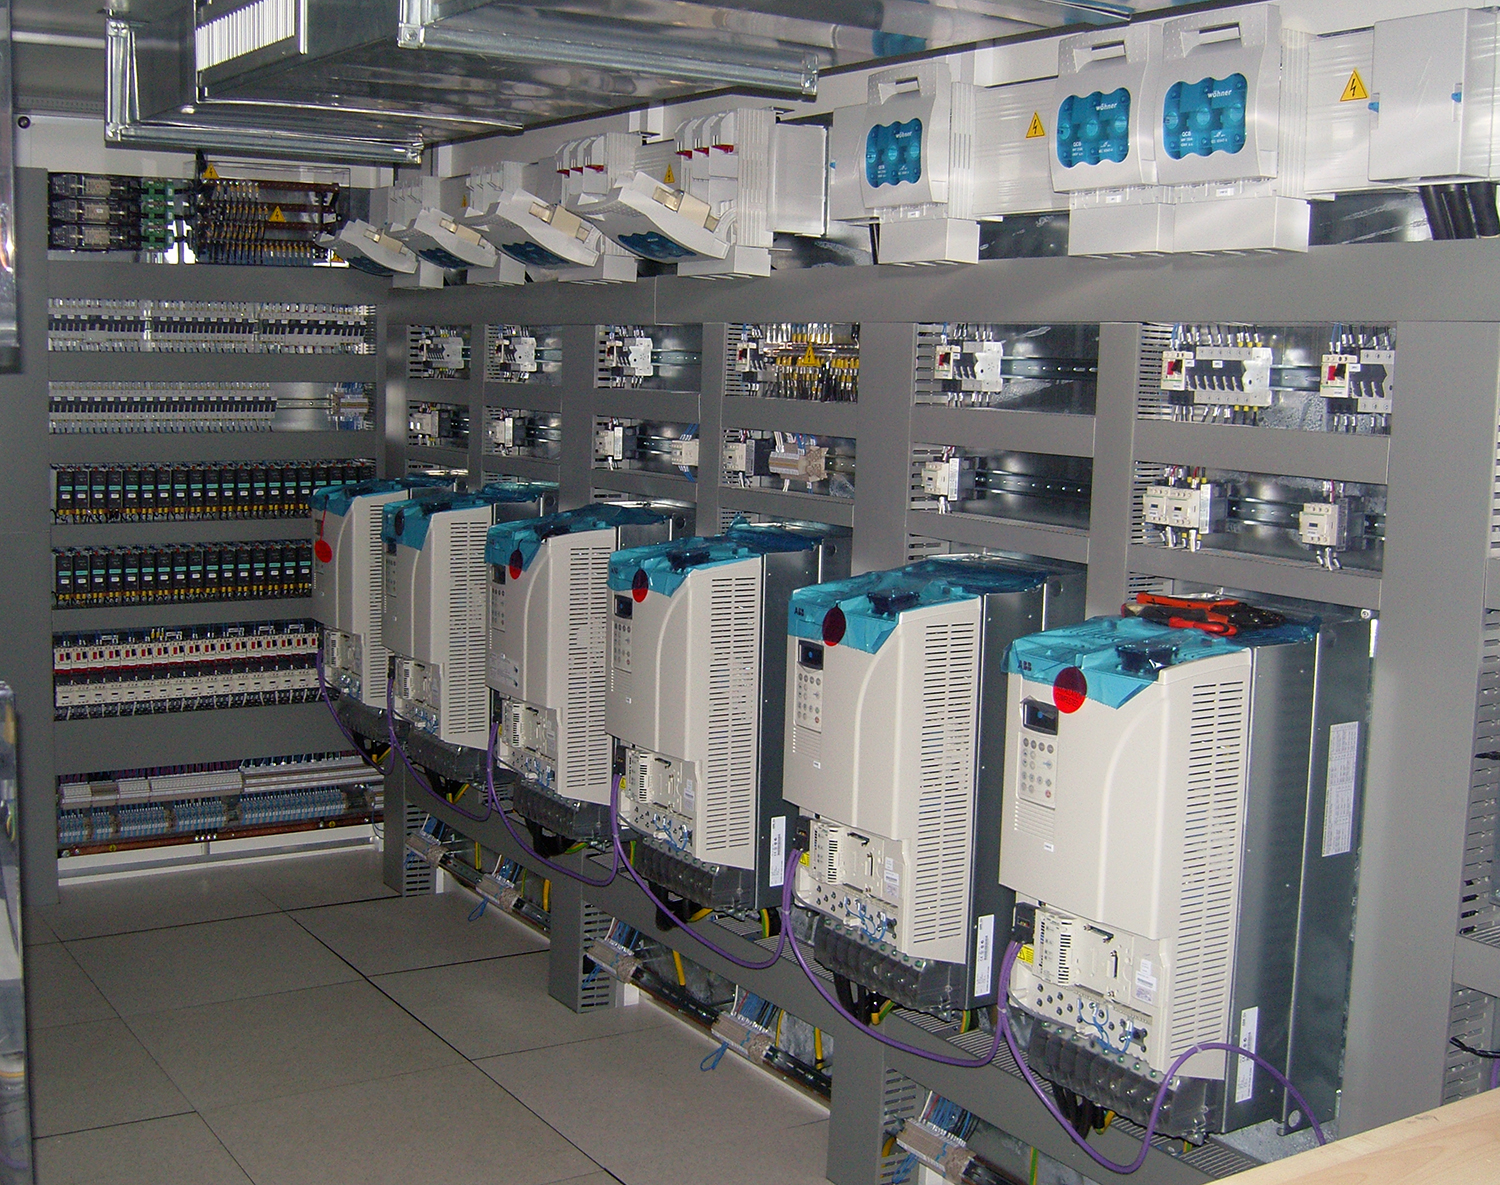 Electrical Cabinets in Containers